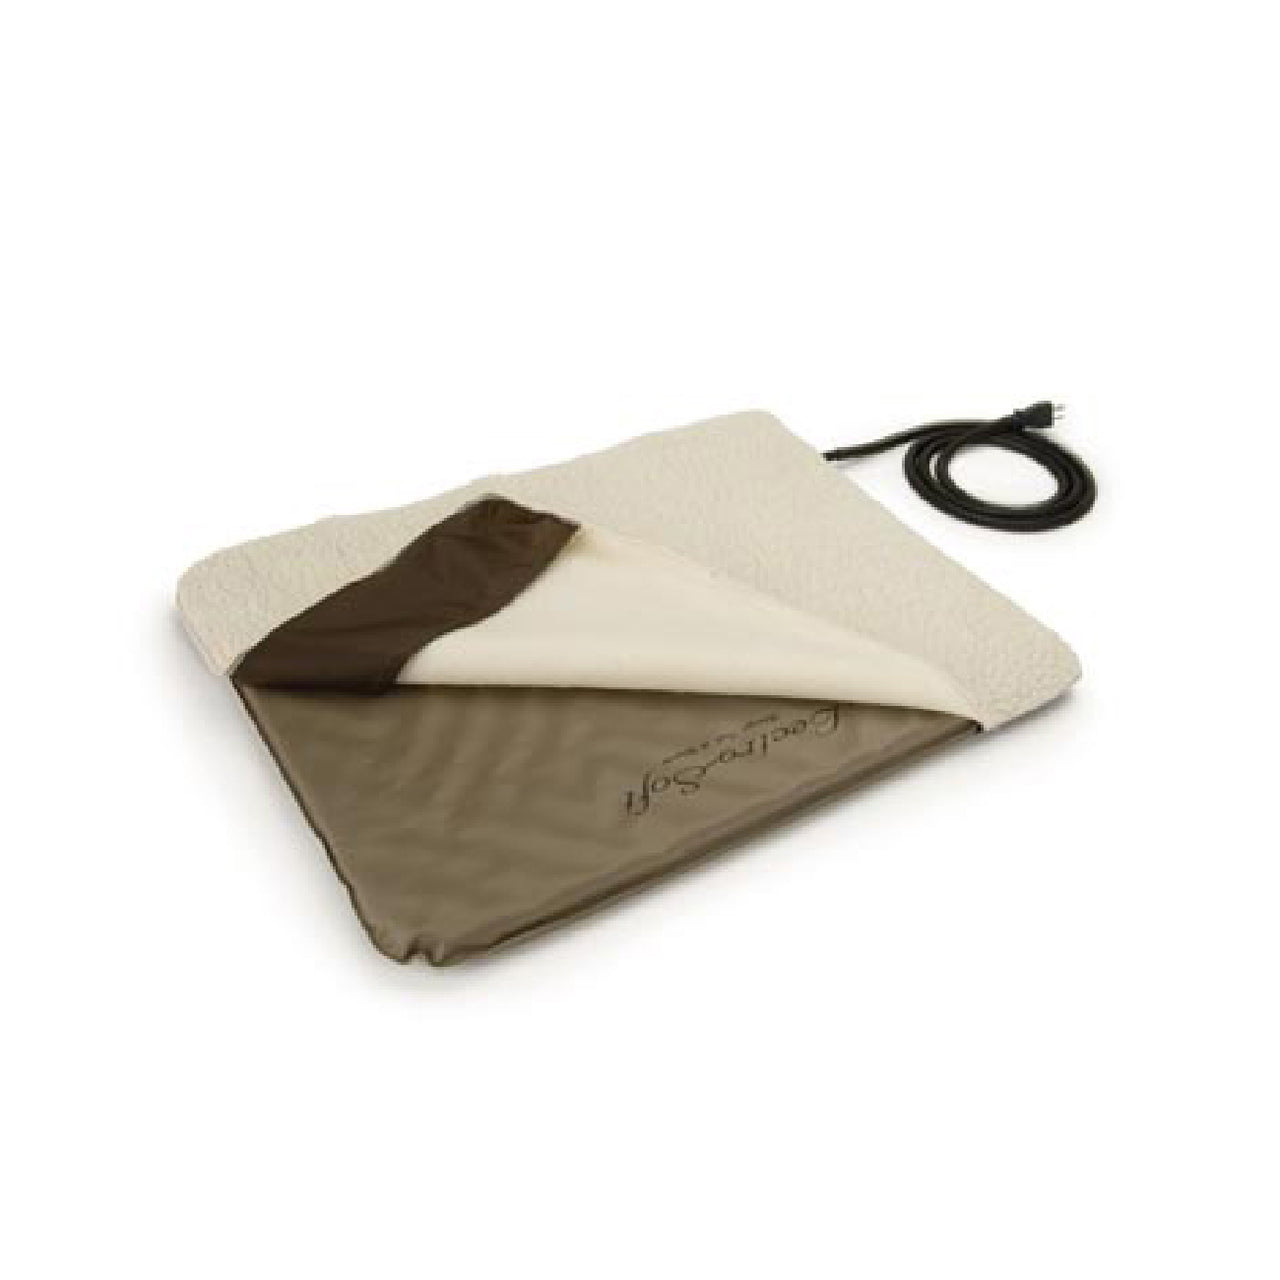 K&h Pet Products Lectro-Soft Outdoor Heated Bed & Cover Chocolate/tan (Medium-60W) - Lectro-Soft Outdoor Heated Pad & Cover K&h Pet Products